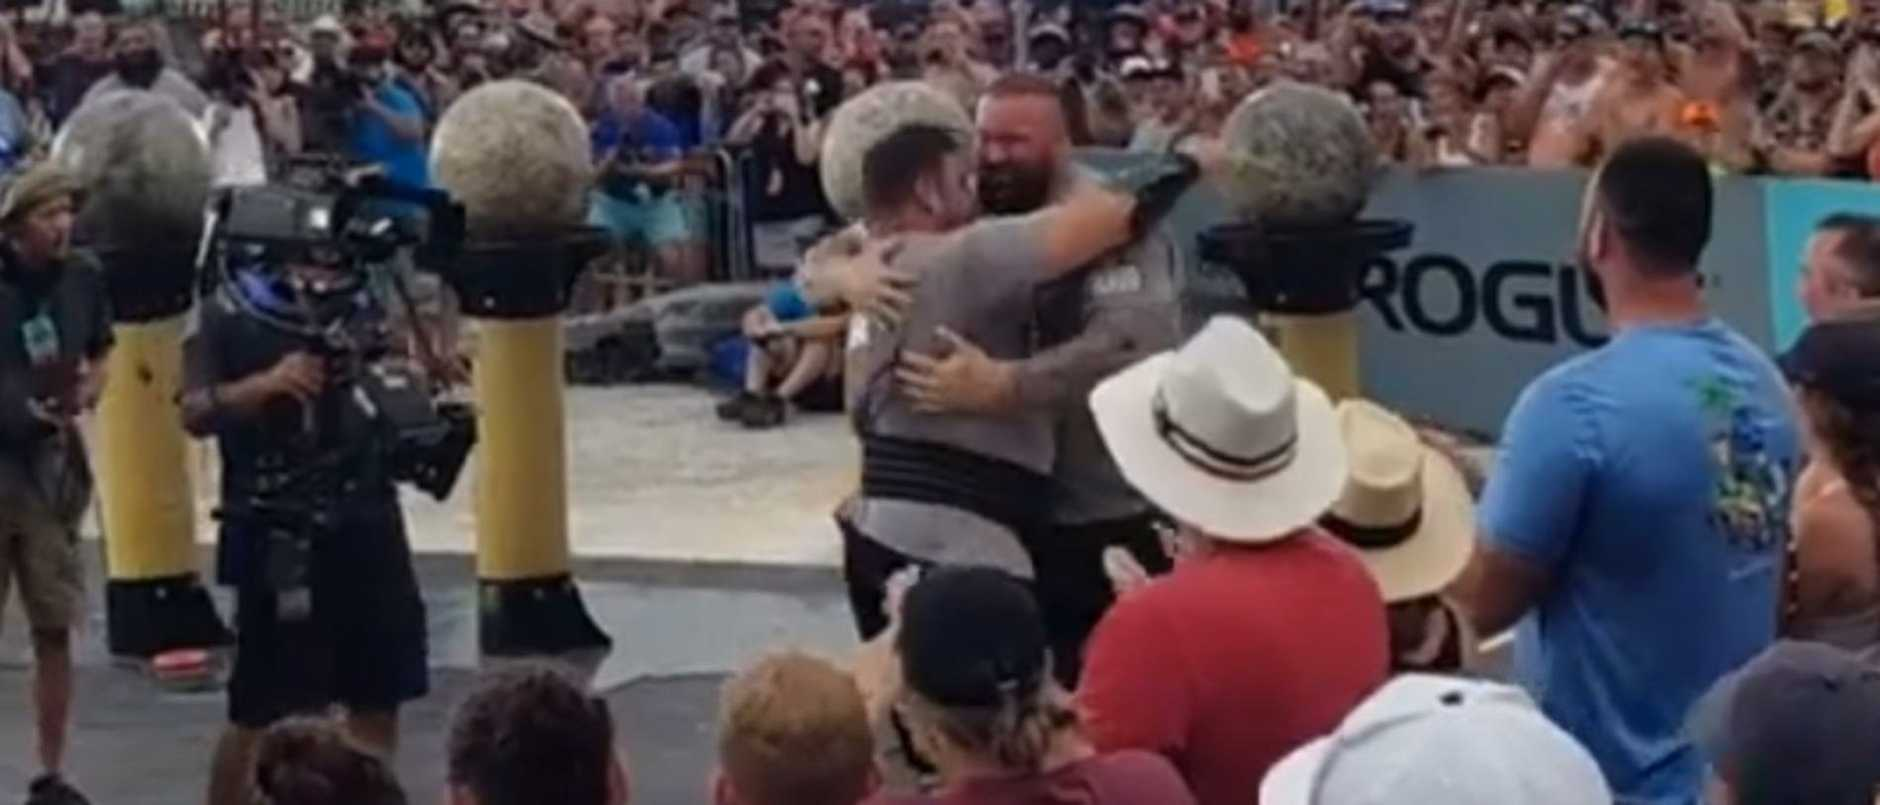 Pure class moment The Mountain congratulates The Dragon on World's Strongest Man victory.